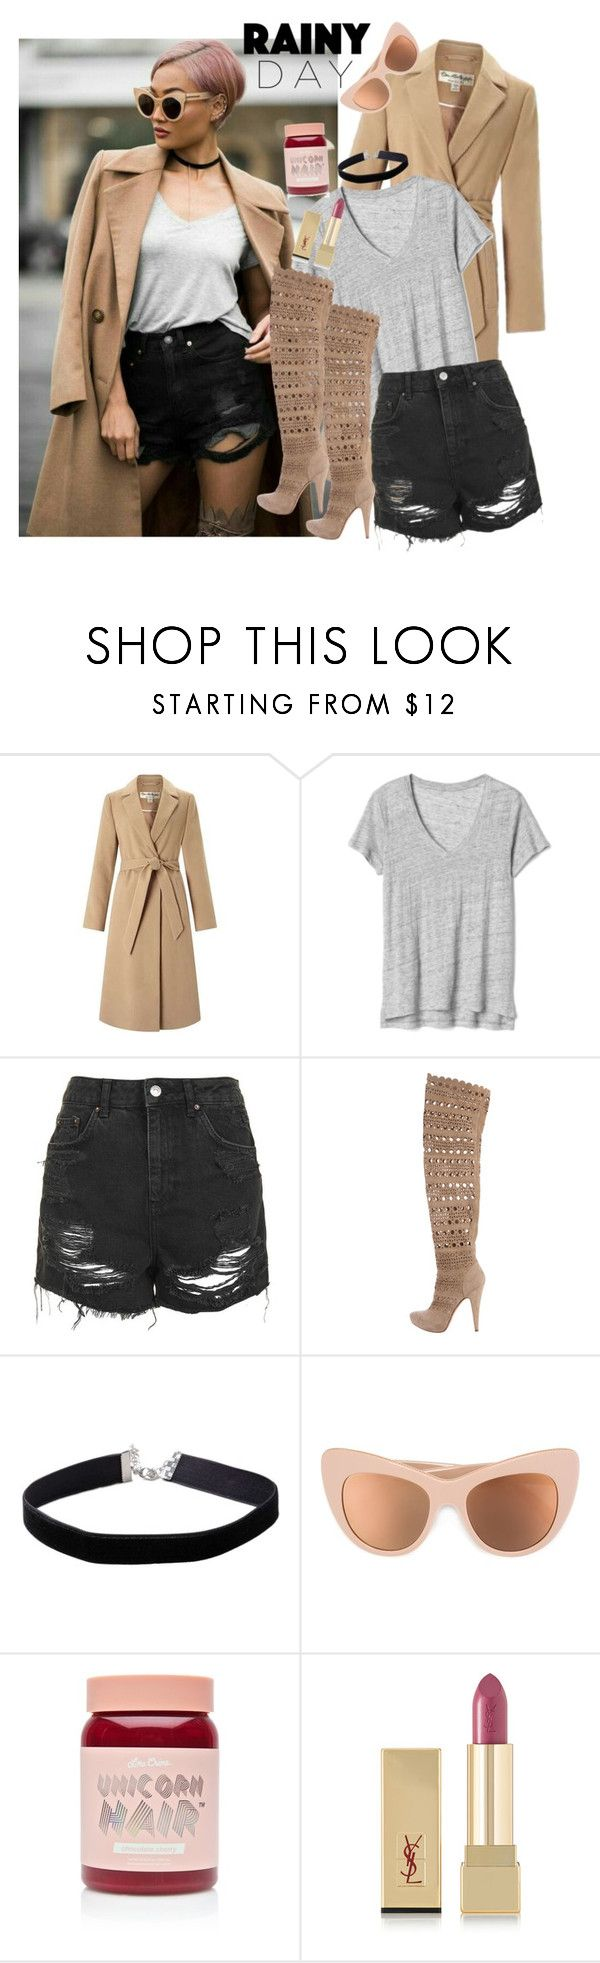 """Micah-Rainy Day"" by dobesht ❤ liked on Polyvore featuring Miss Selfridge, Gap, Topshop, Gianmarco Lorenzi, STELLA McCARTNEY, Lime Crime and Yves Saint Laurent"